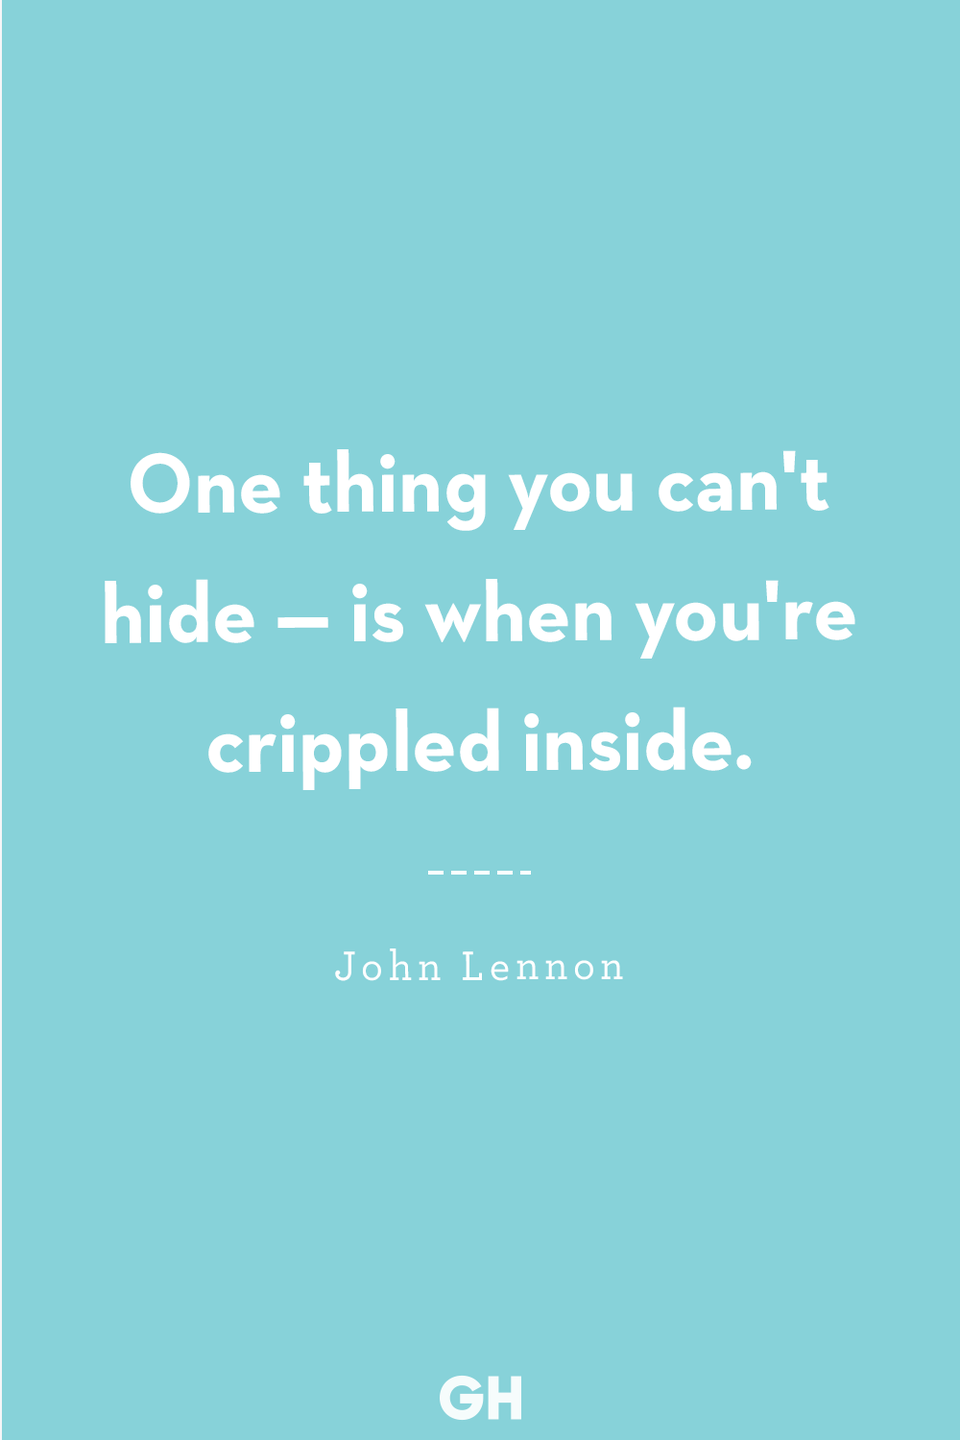 <p>One thing you can't hide — is when you're crippled inside.</p>